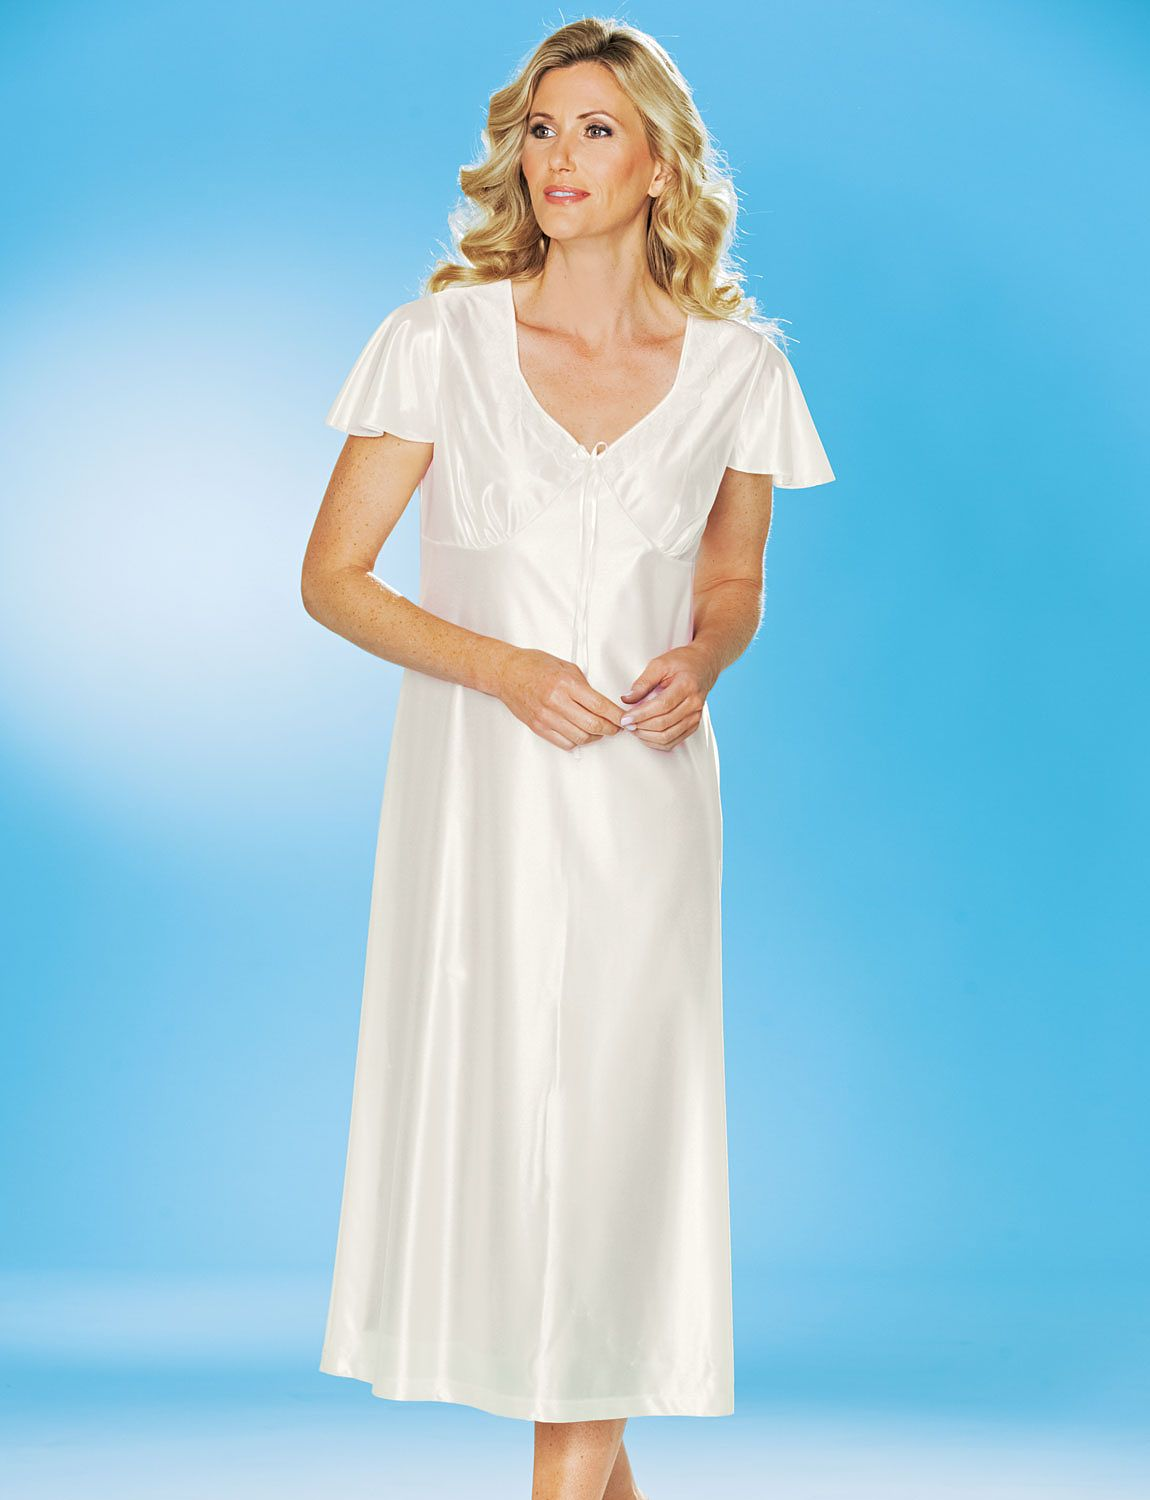 Pack of satin short sleeve nightdresses ladieswear nightwear